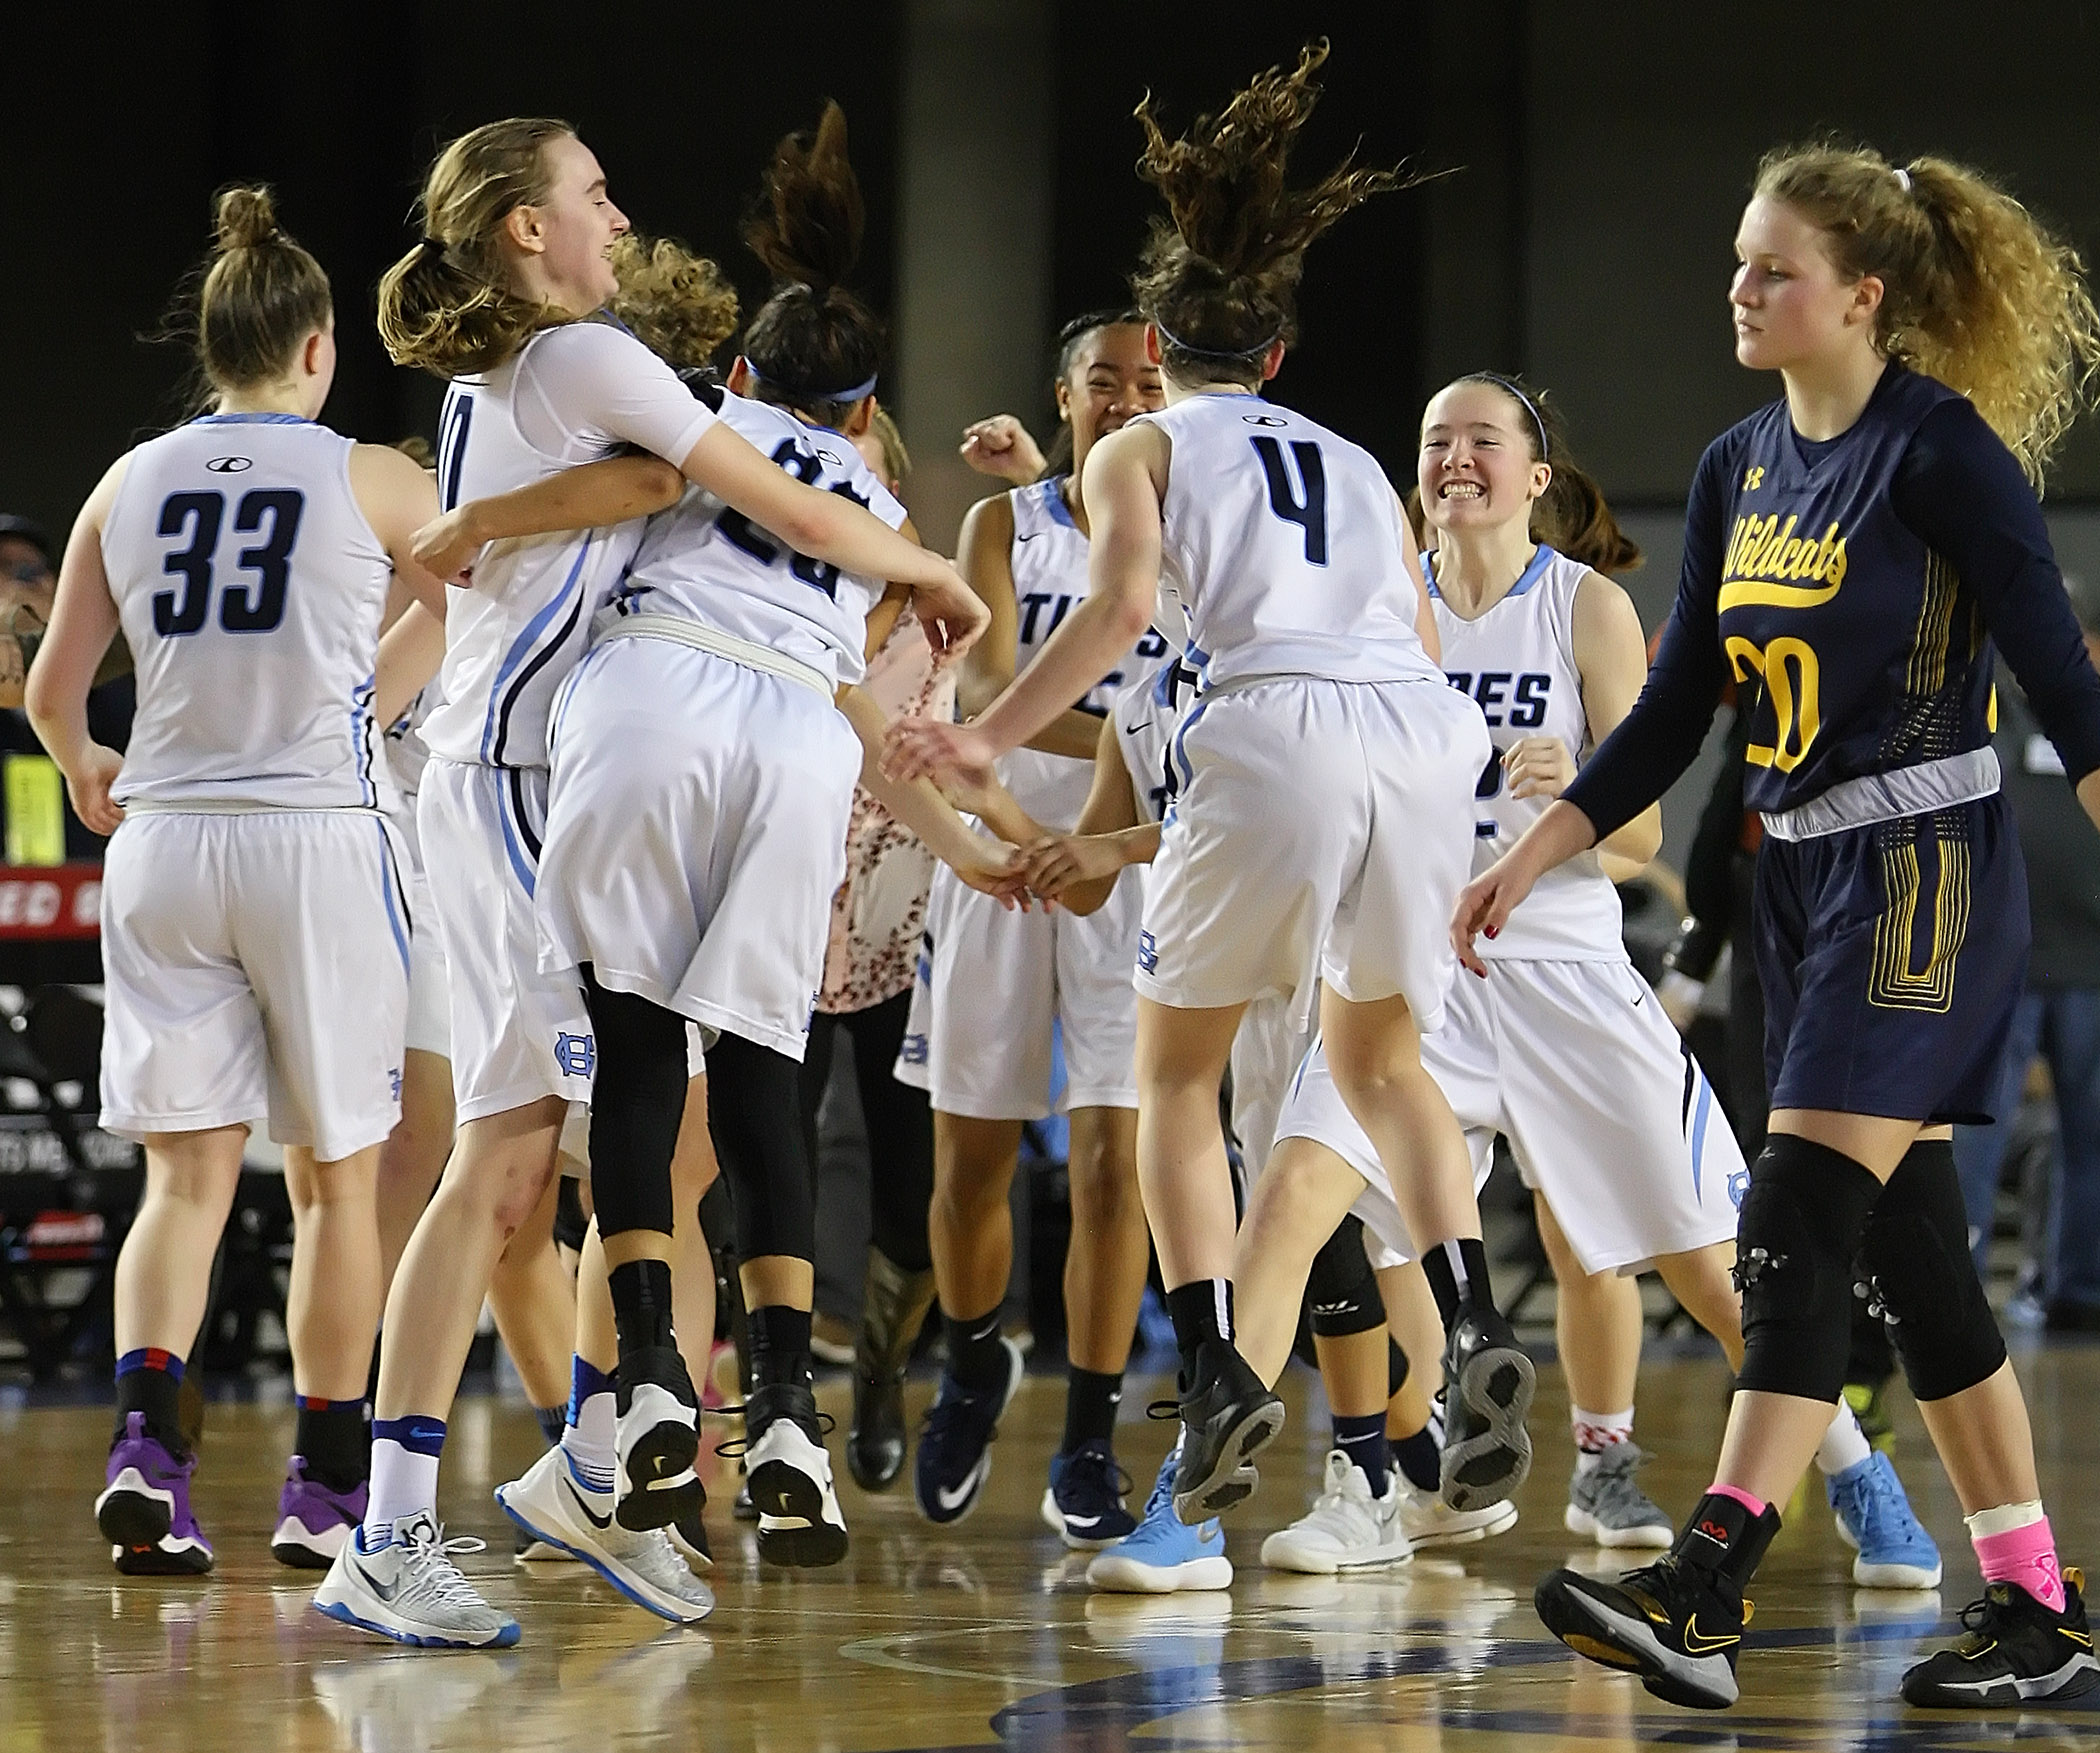 The thrill of victory for Gig Harbor, and the agony of defeat for West Seattle.